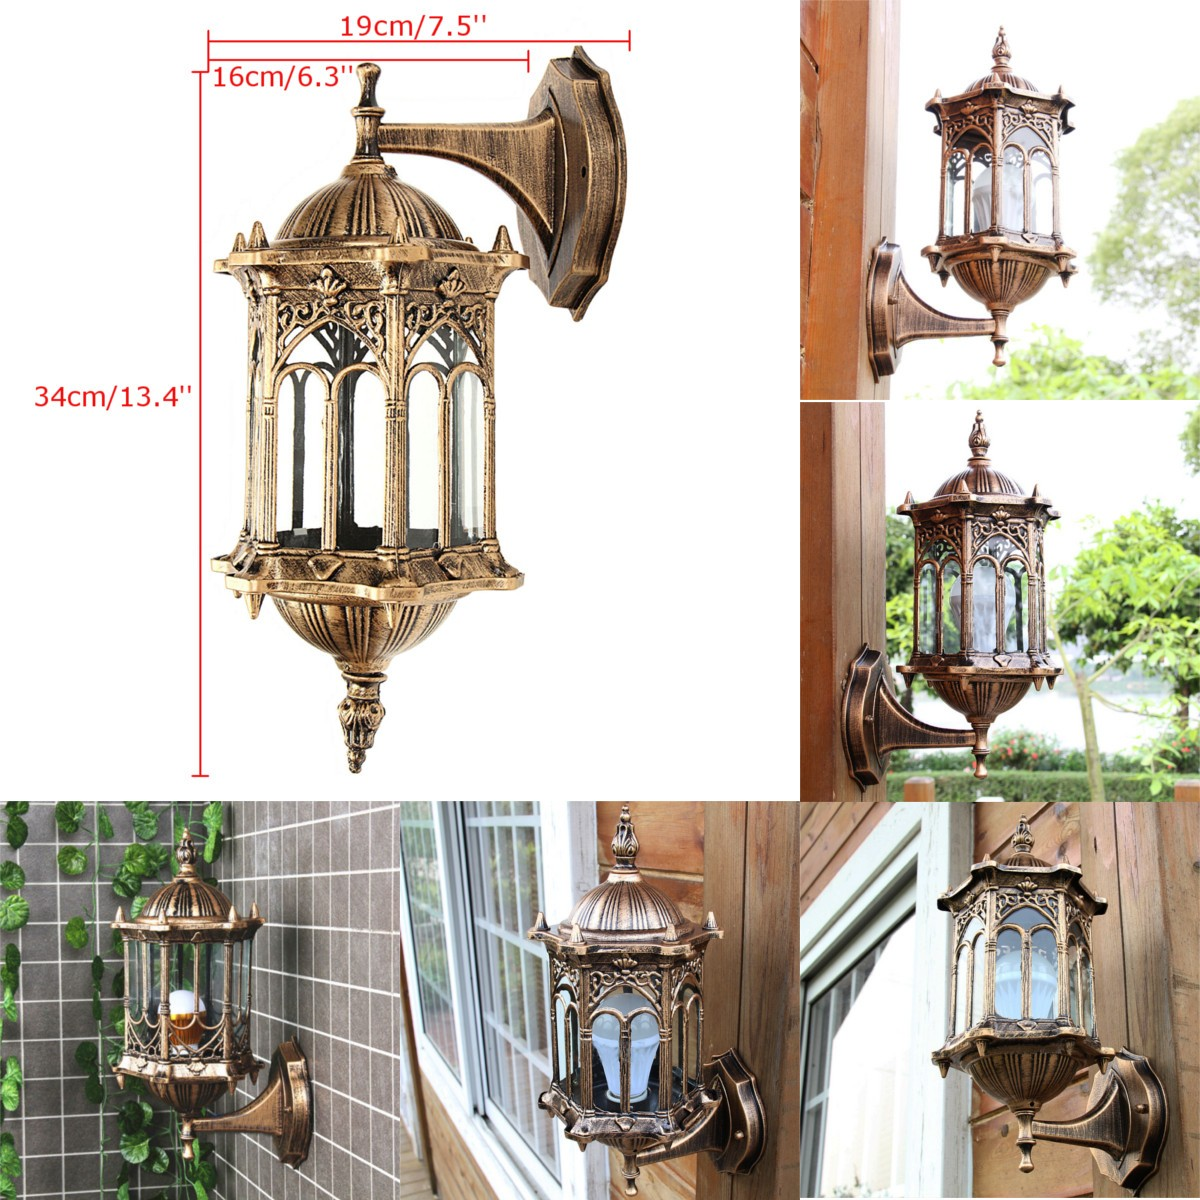 E27 Antique Wall Light Lamp Lantern Sconce Porch Lighting Exterior Fixture Outdoor